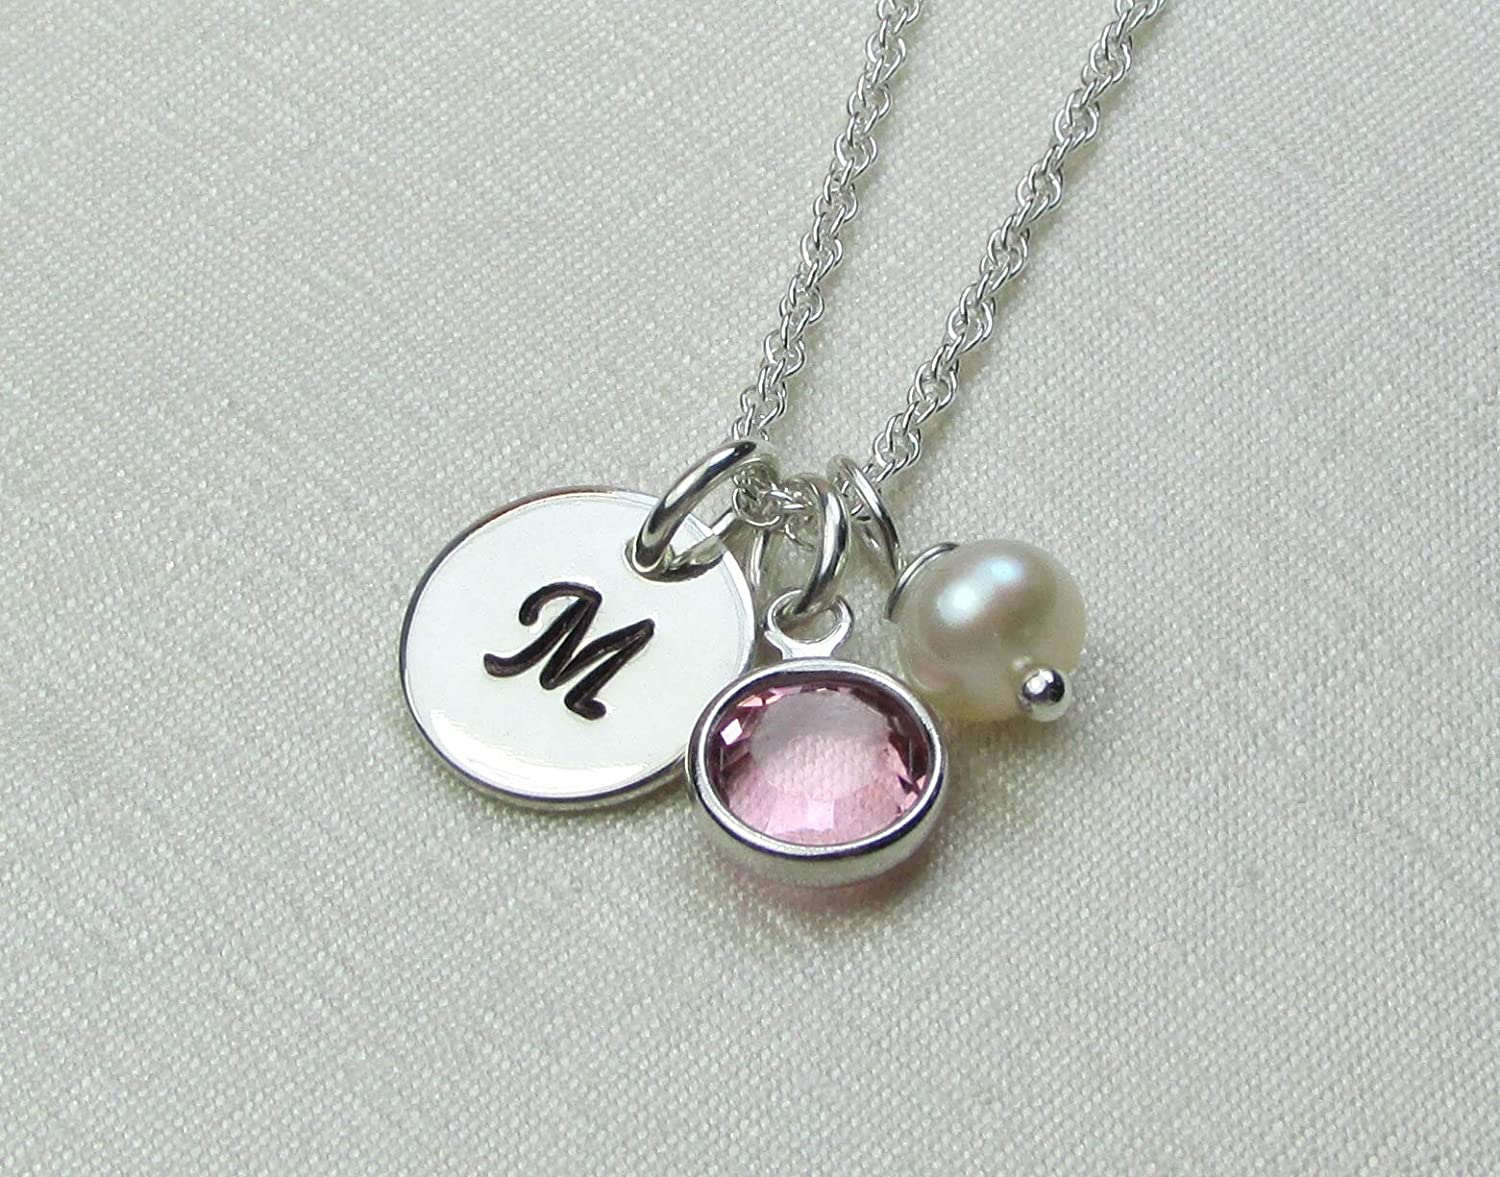 95ca646733fe1 Personalized Necklace with Birthstone Sterling Silver Initial Necklace  Custom Mothers Necklace Monogram Jewelry Bridesmaid Gift Idea New Baby Gift  for ...